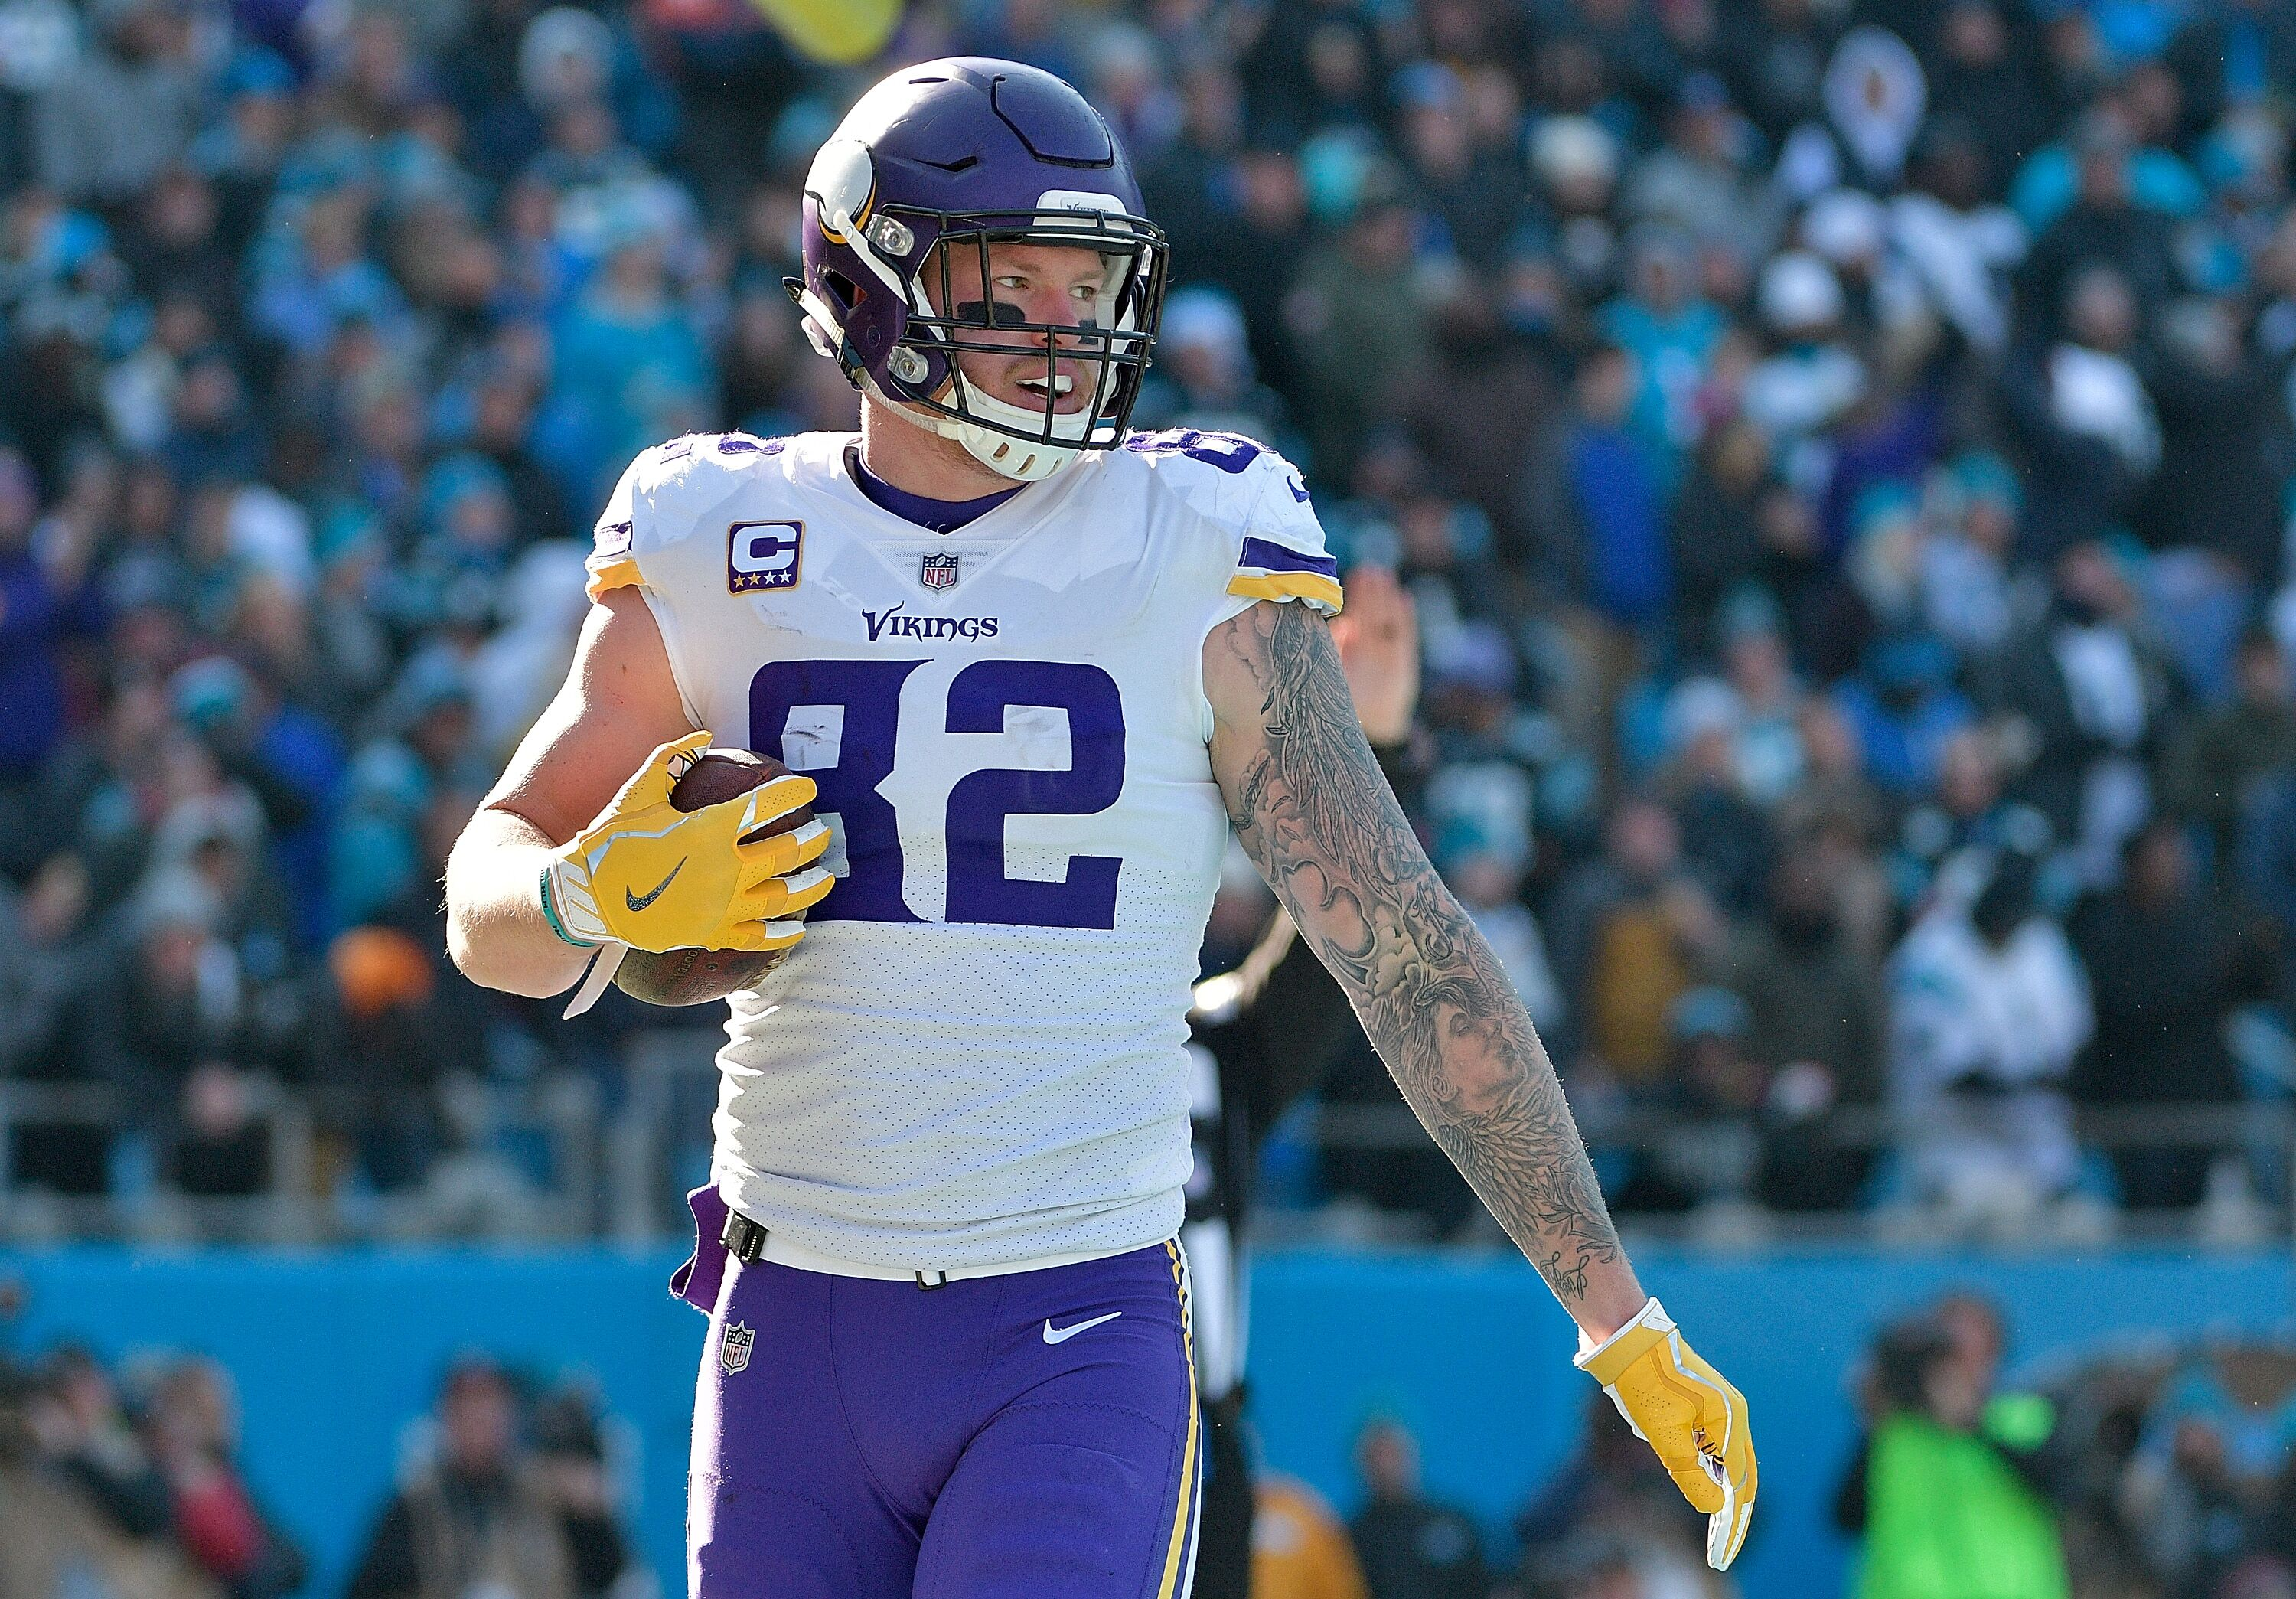 Kyle Rudolph confirms Vikings offered a contract extension